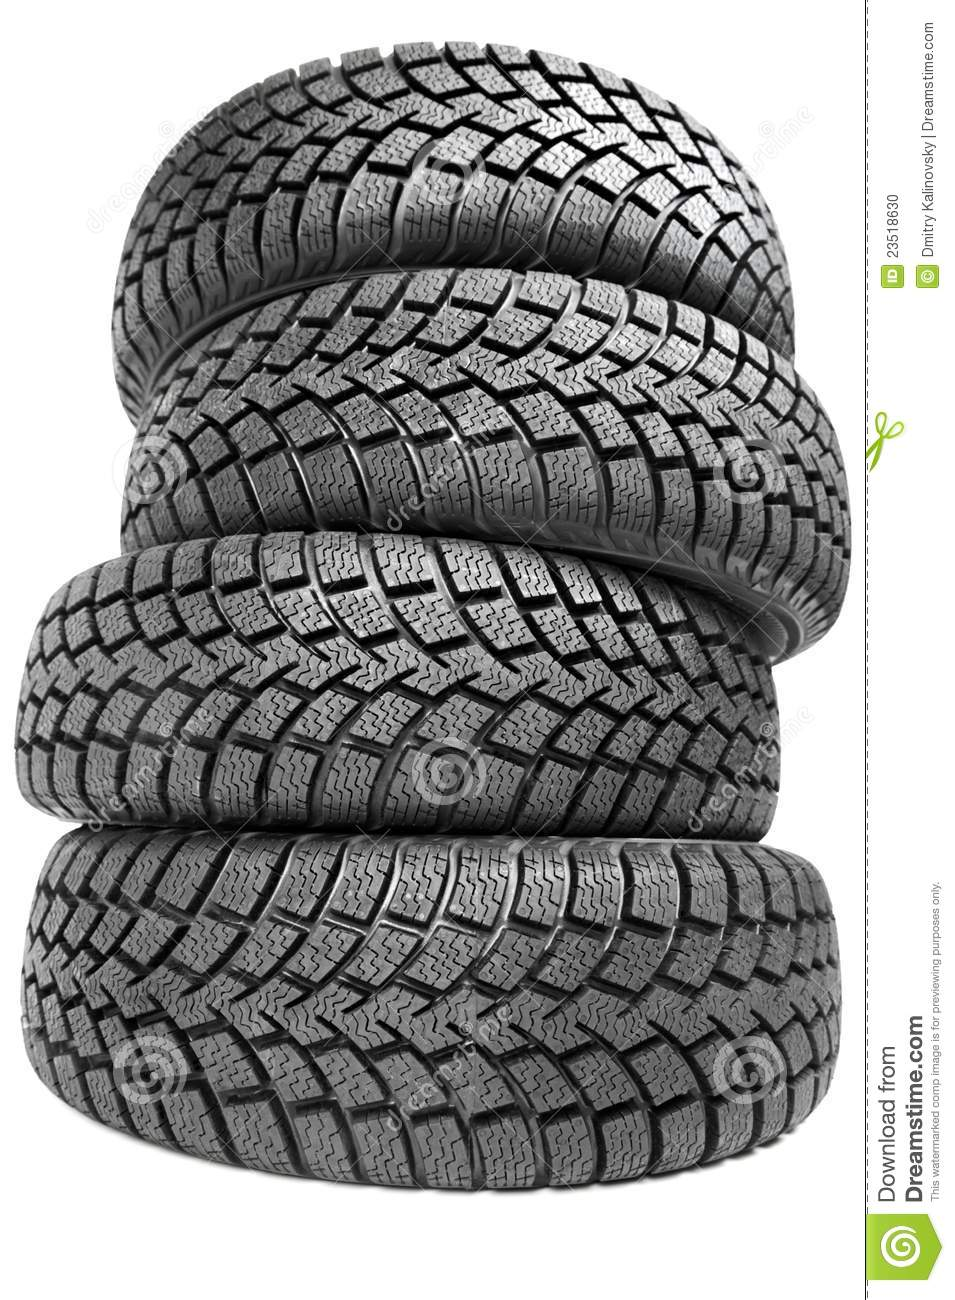 Stack of tires clipart.